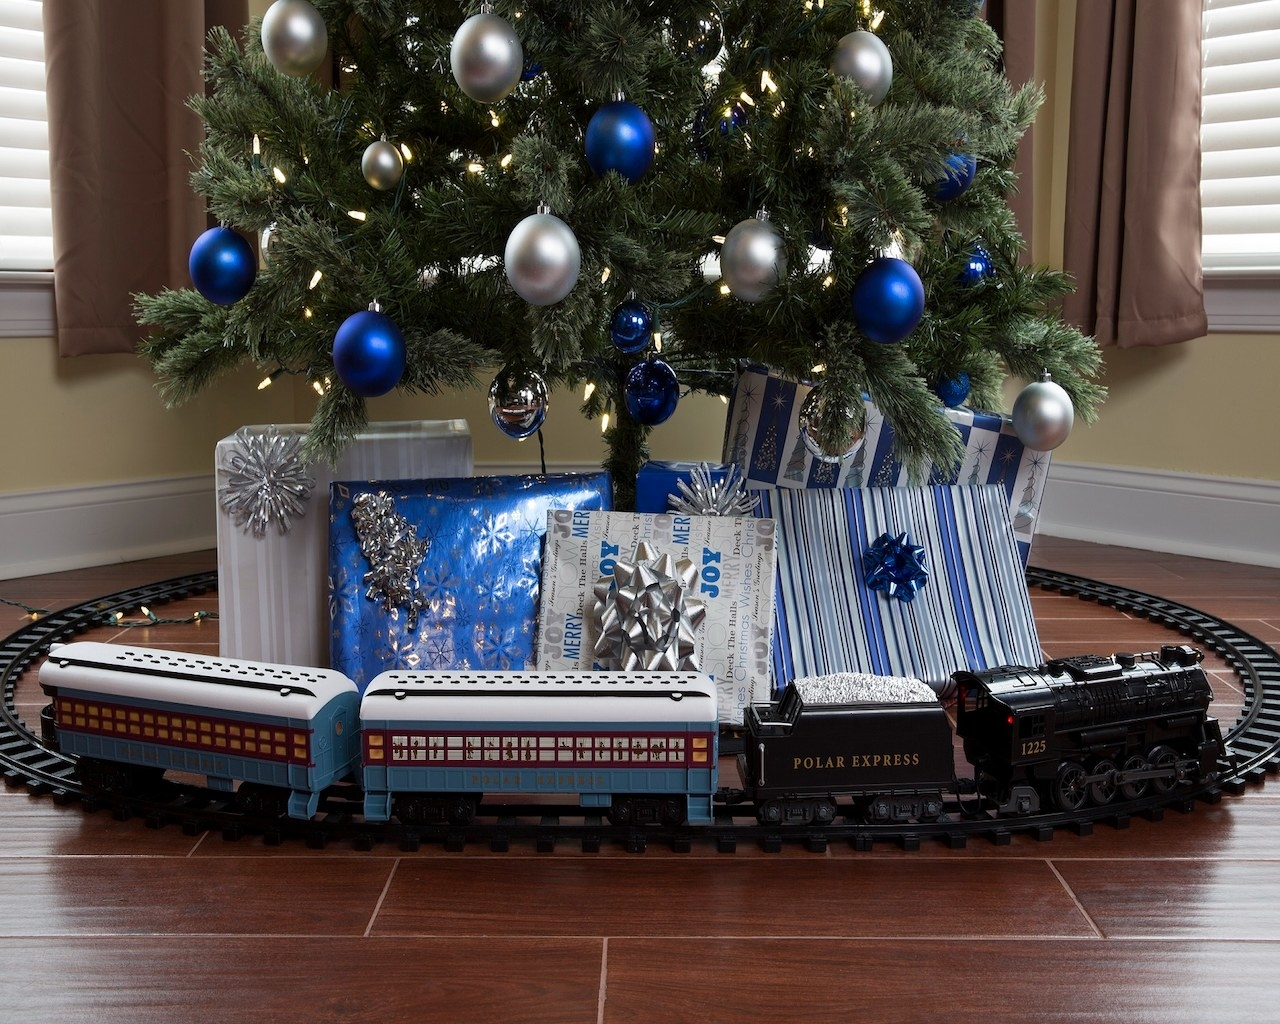 The train on its tracks going around the base of a Christmas tree